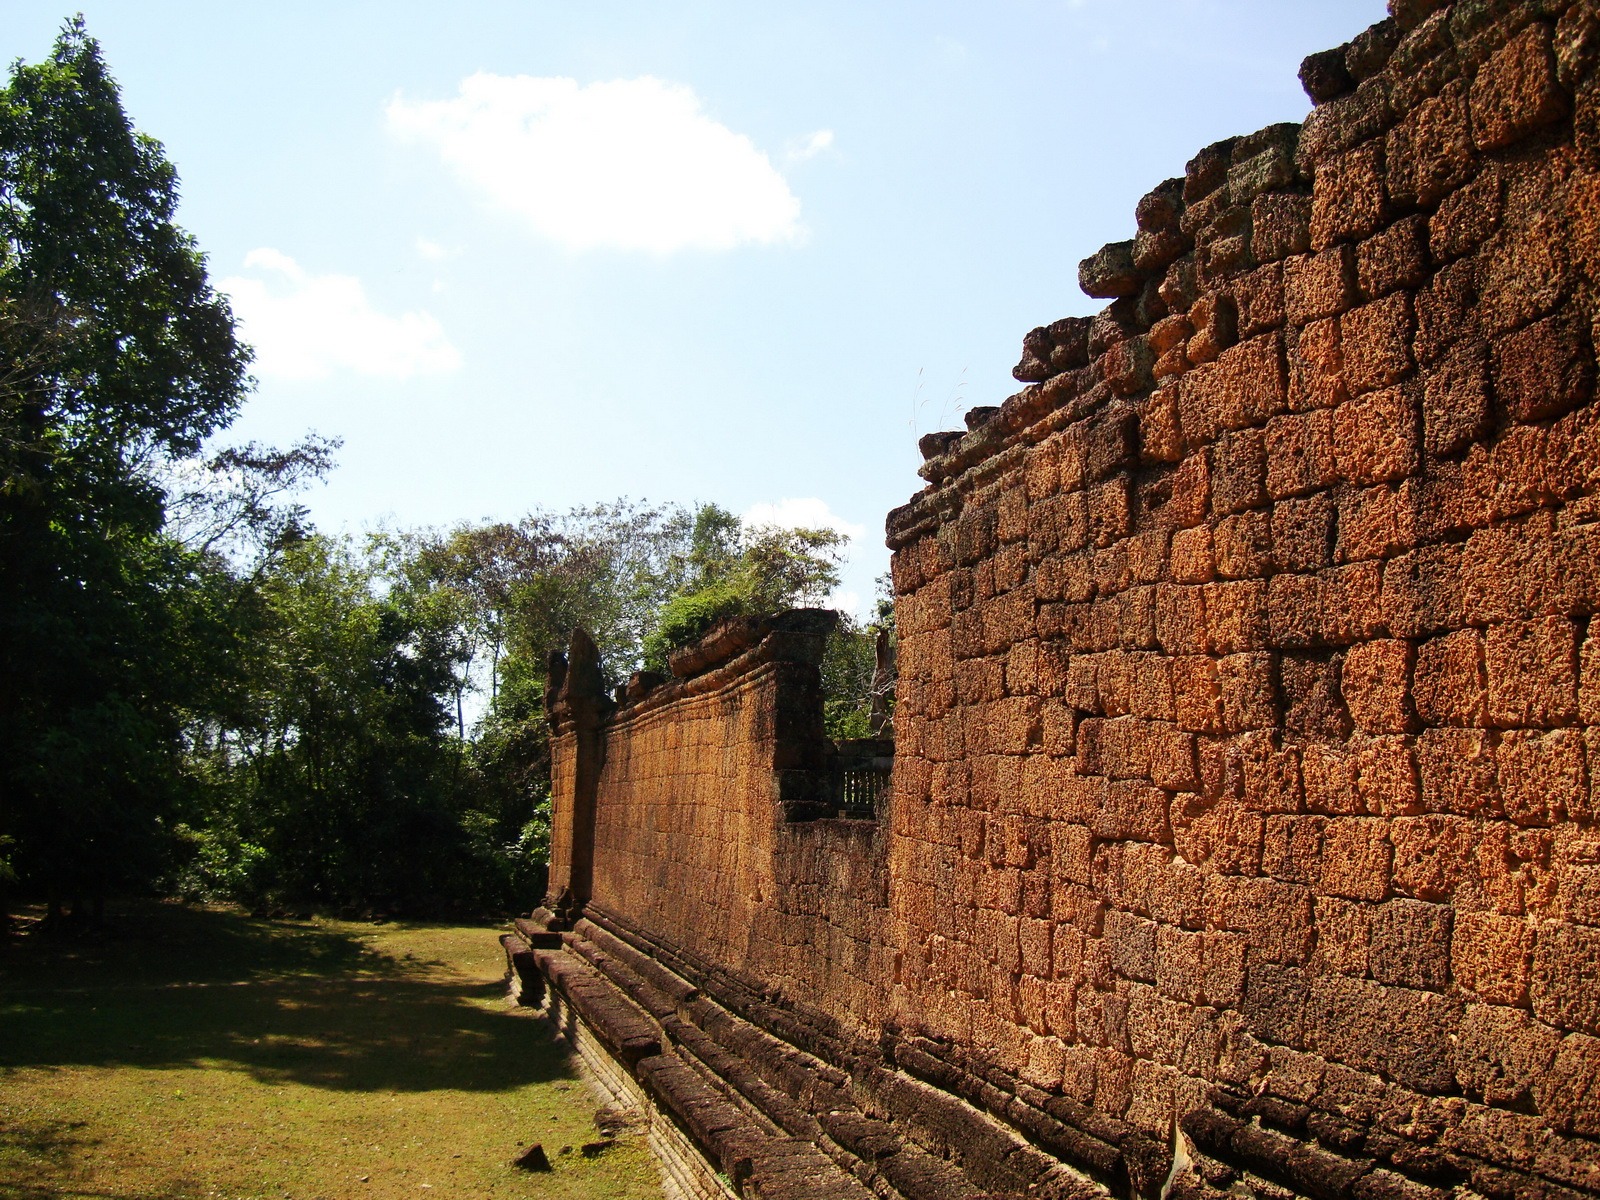 Banteay Samre Temple 12th century architecture laterite walls 04